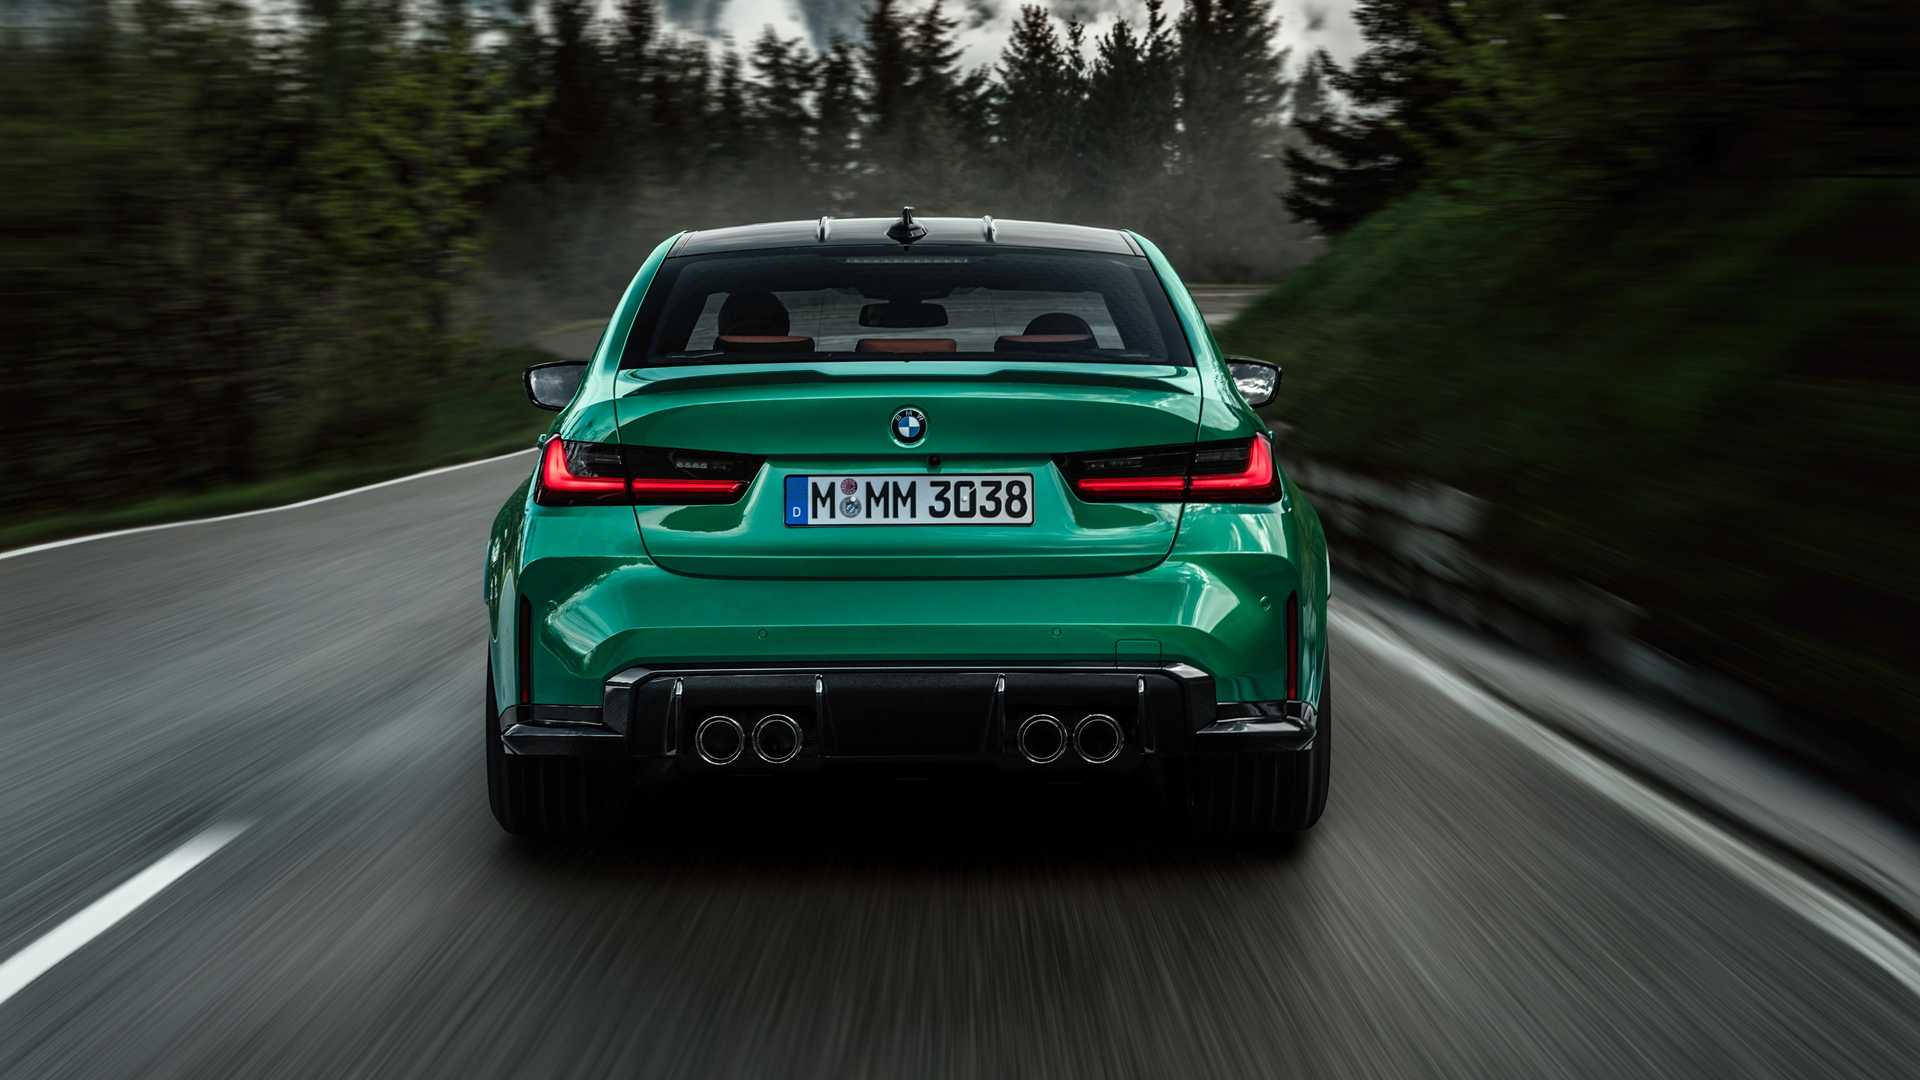 2021 BMW M3 Rear Lights